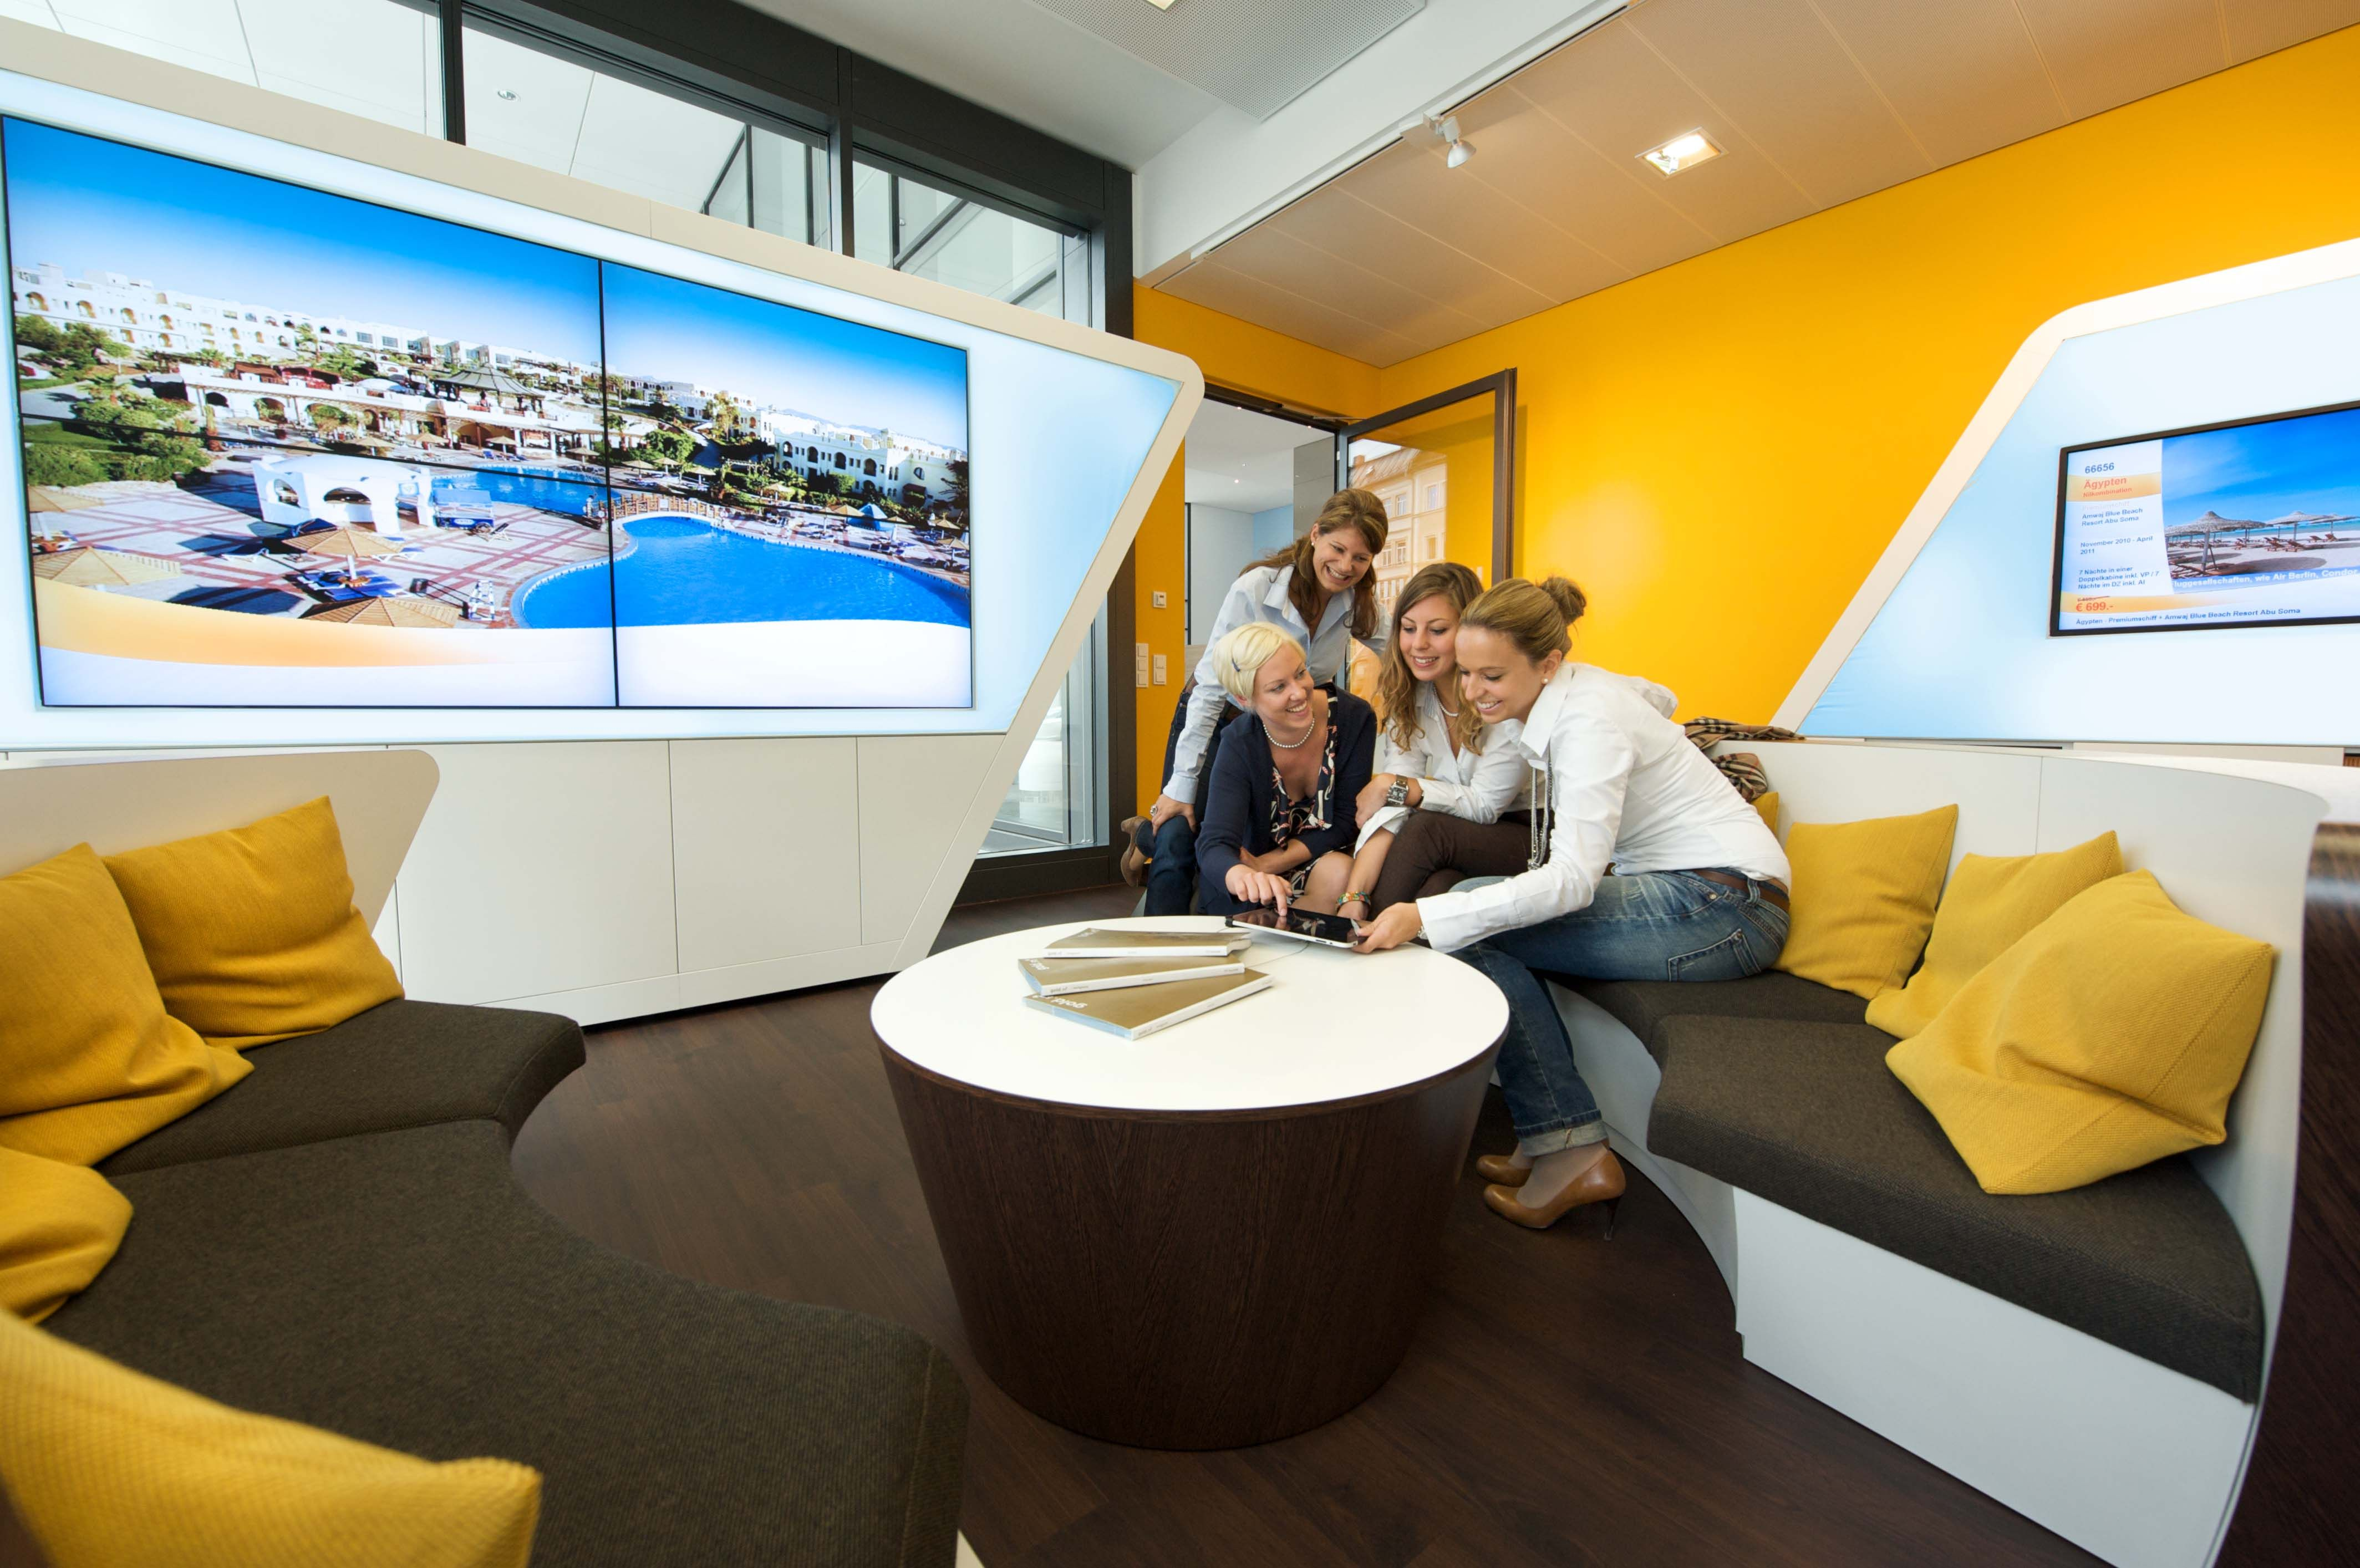 It was the first travel agents in germany to be equipped for Space design agency